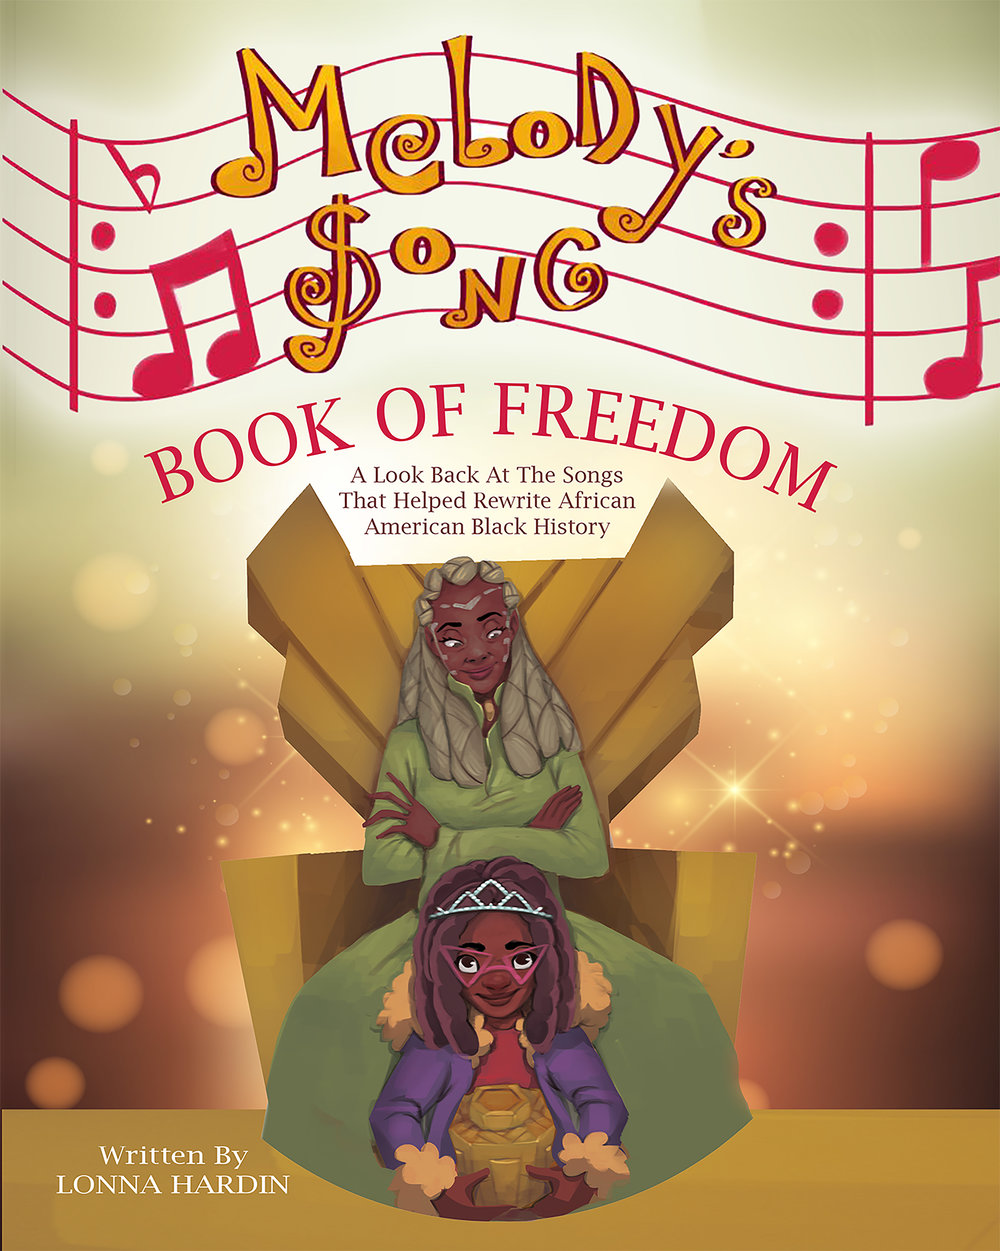 Melodys_Songbook_Of_Freedom_front_300dpi.jpg